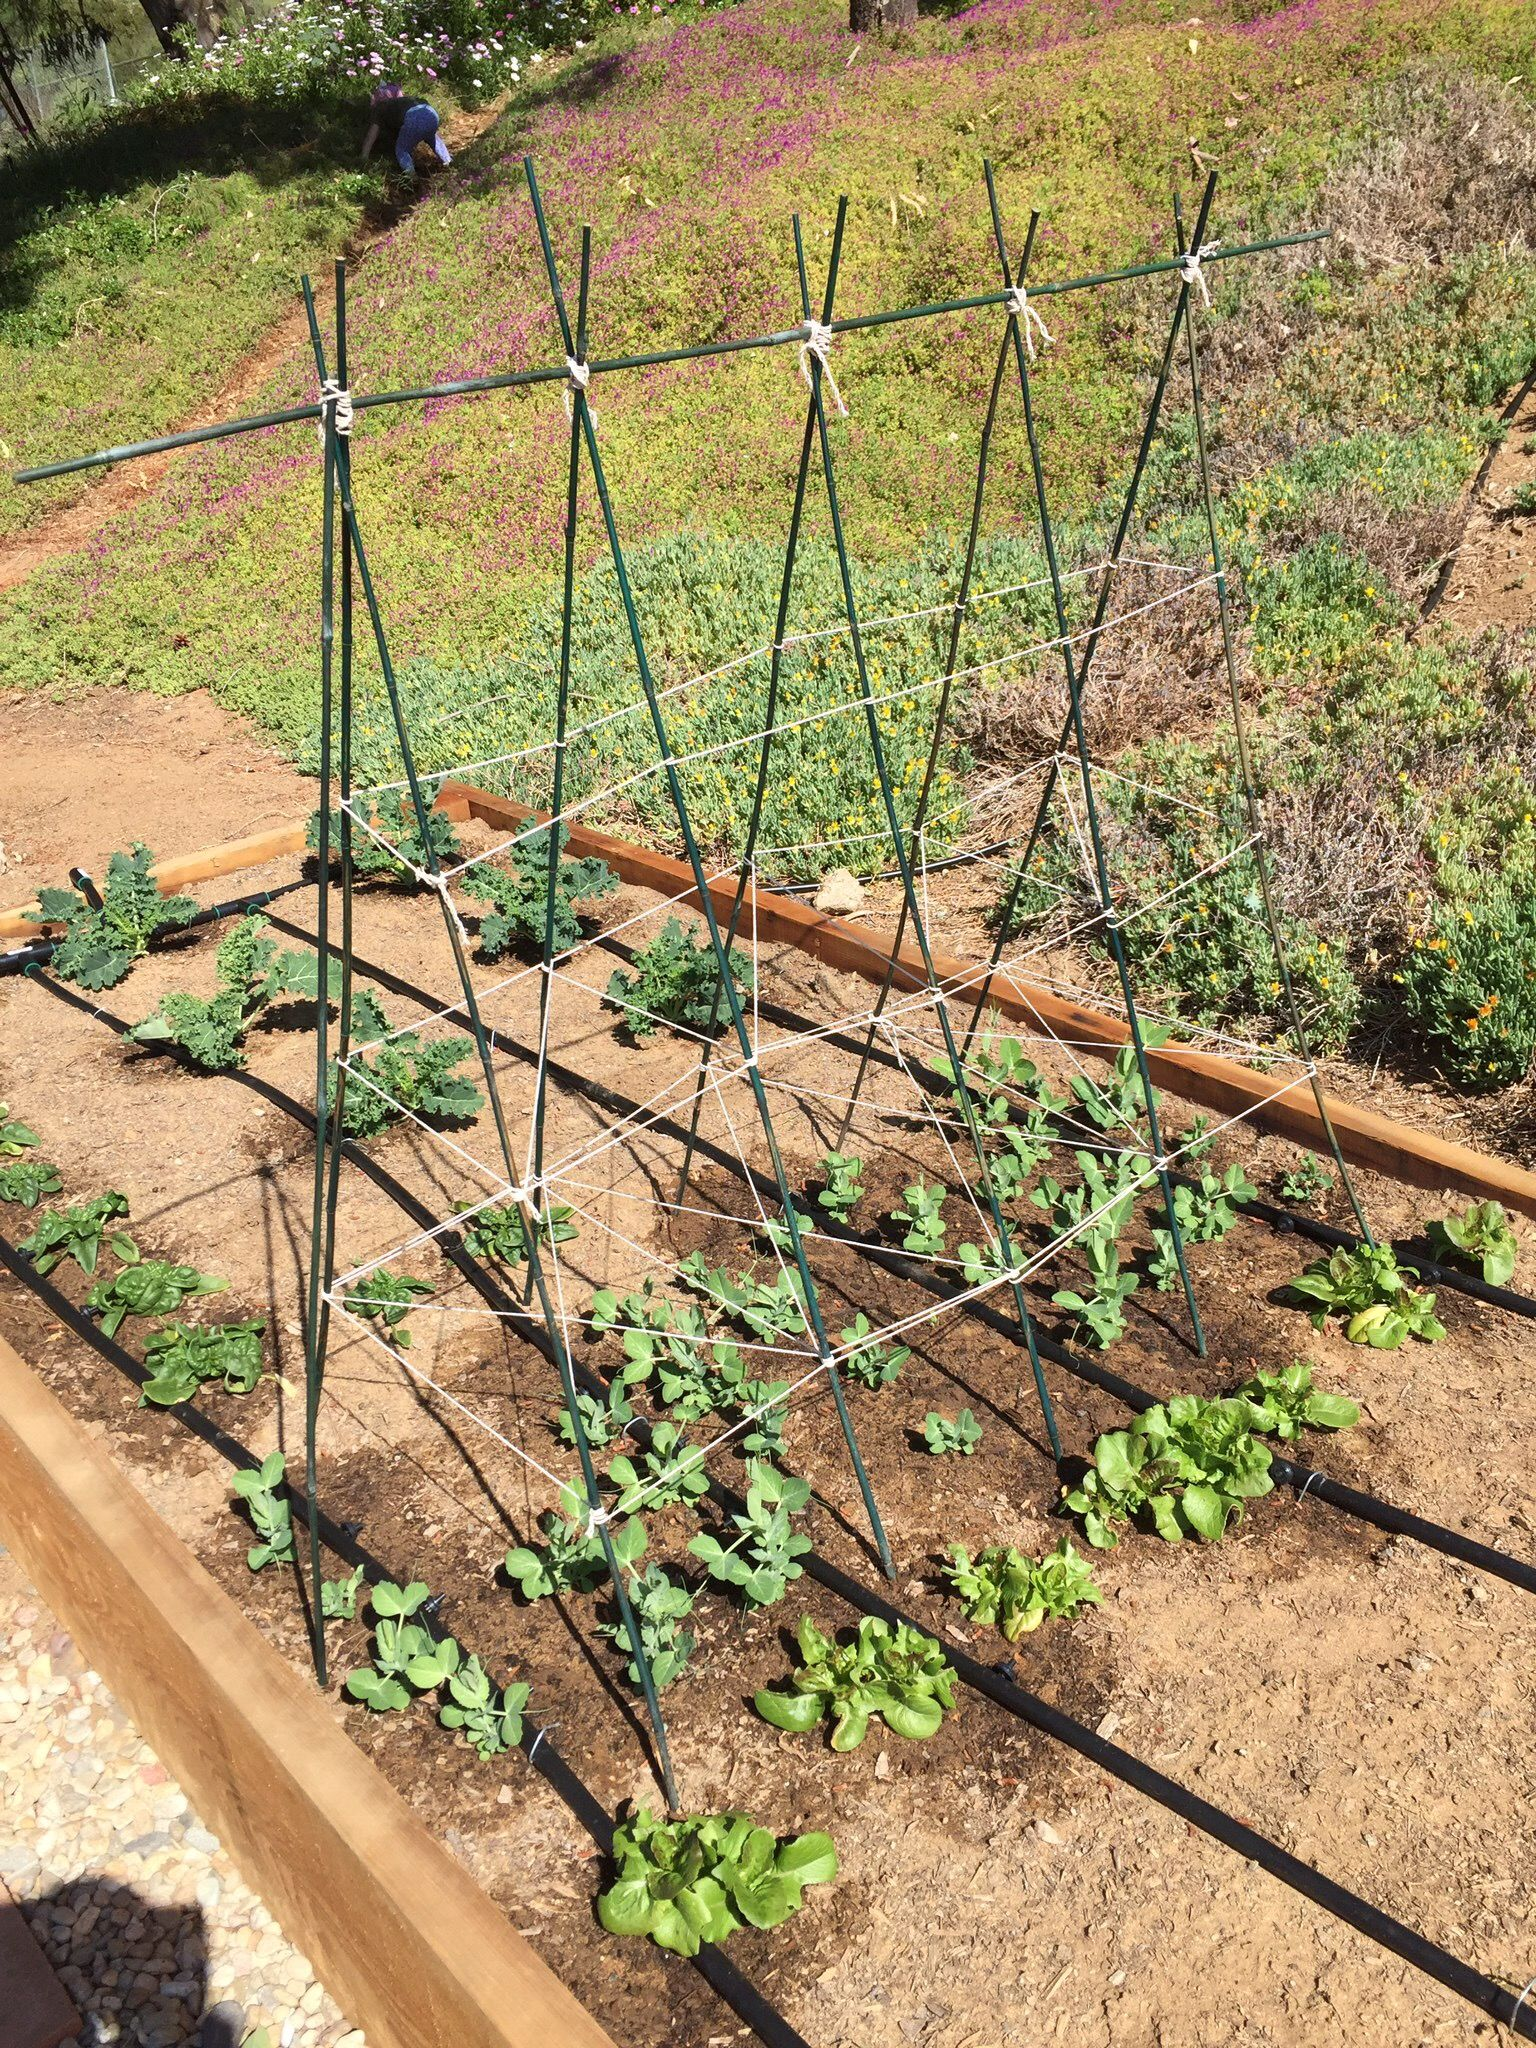 Pea trellis using bamboo stakes and twine